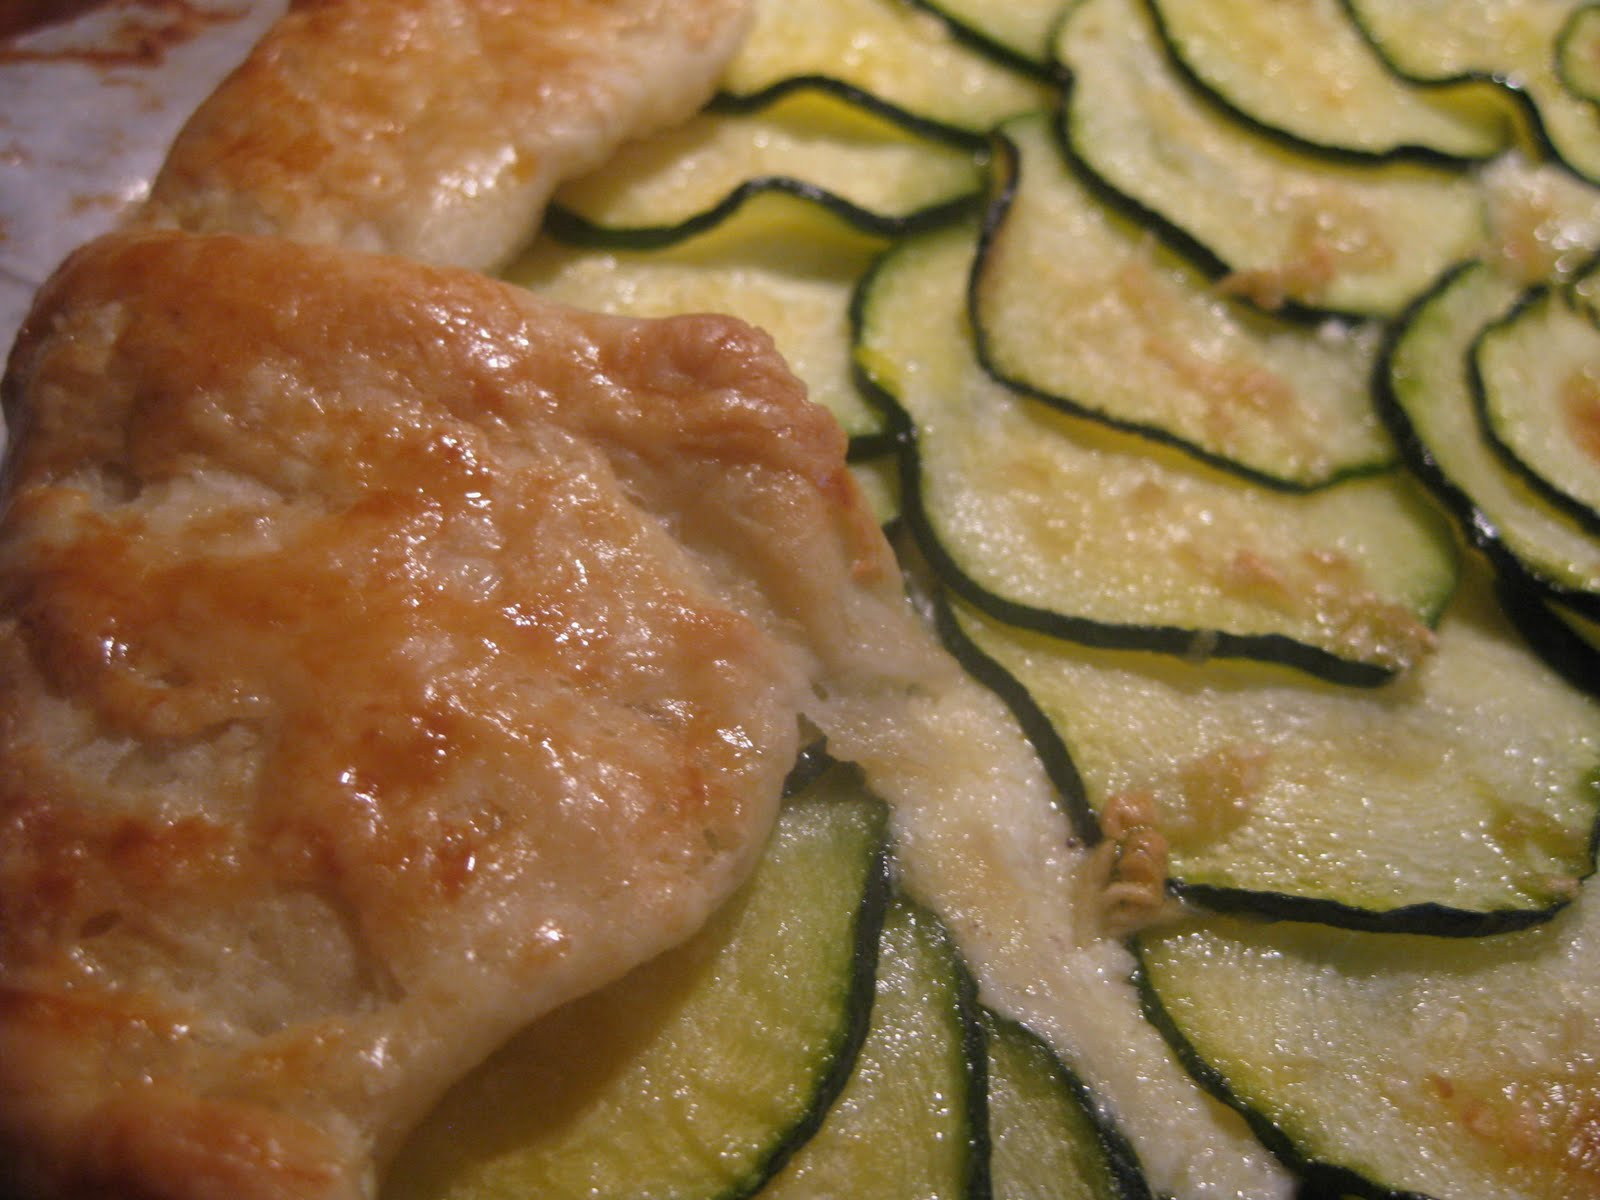 Andrea The Kitchen Witch: Zucchini and Ricotta galette